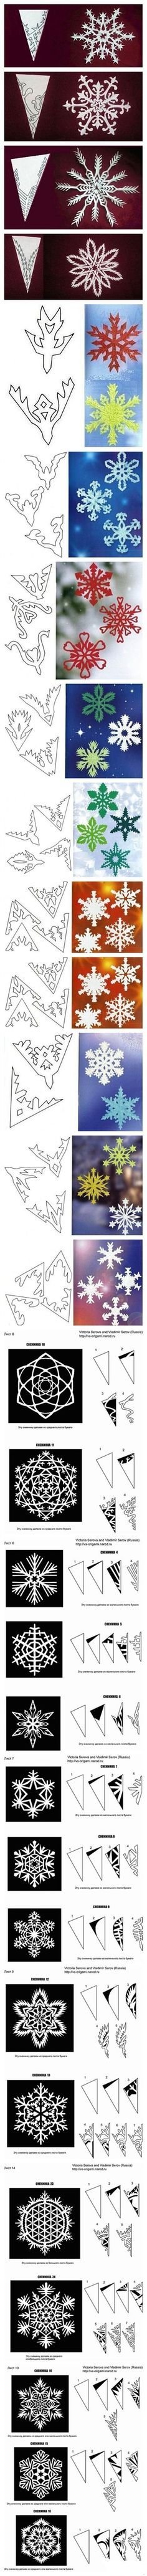 holiday, craft, snowflak pattern, paper snowflakes, cut paper, diy, cut outs, christma, kid